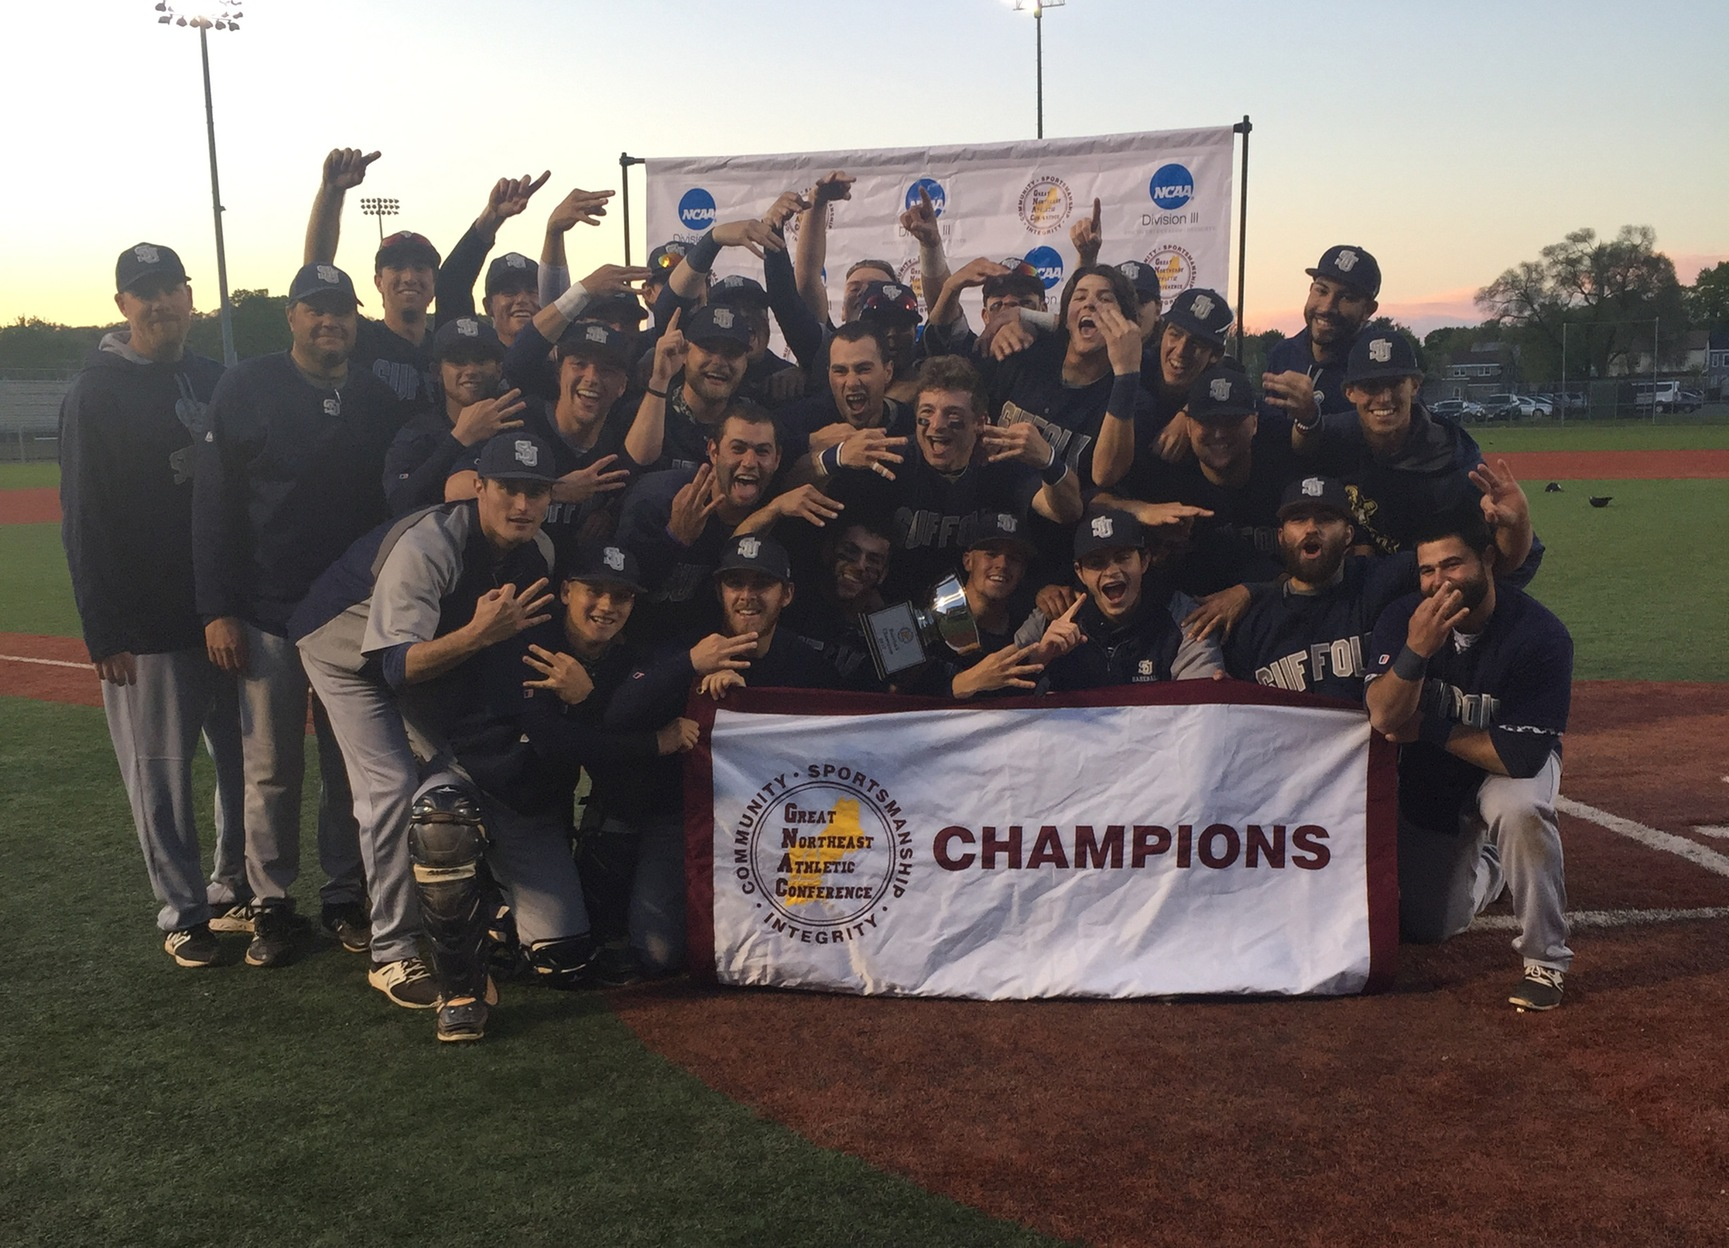 GNAC CHAMPS! Baseball Threepeats with 1-0 Win over JWU